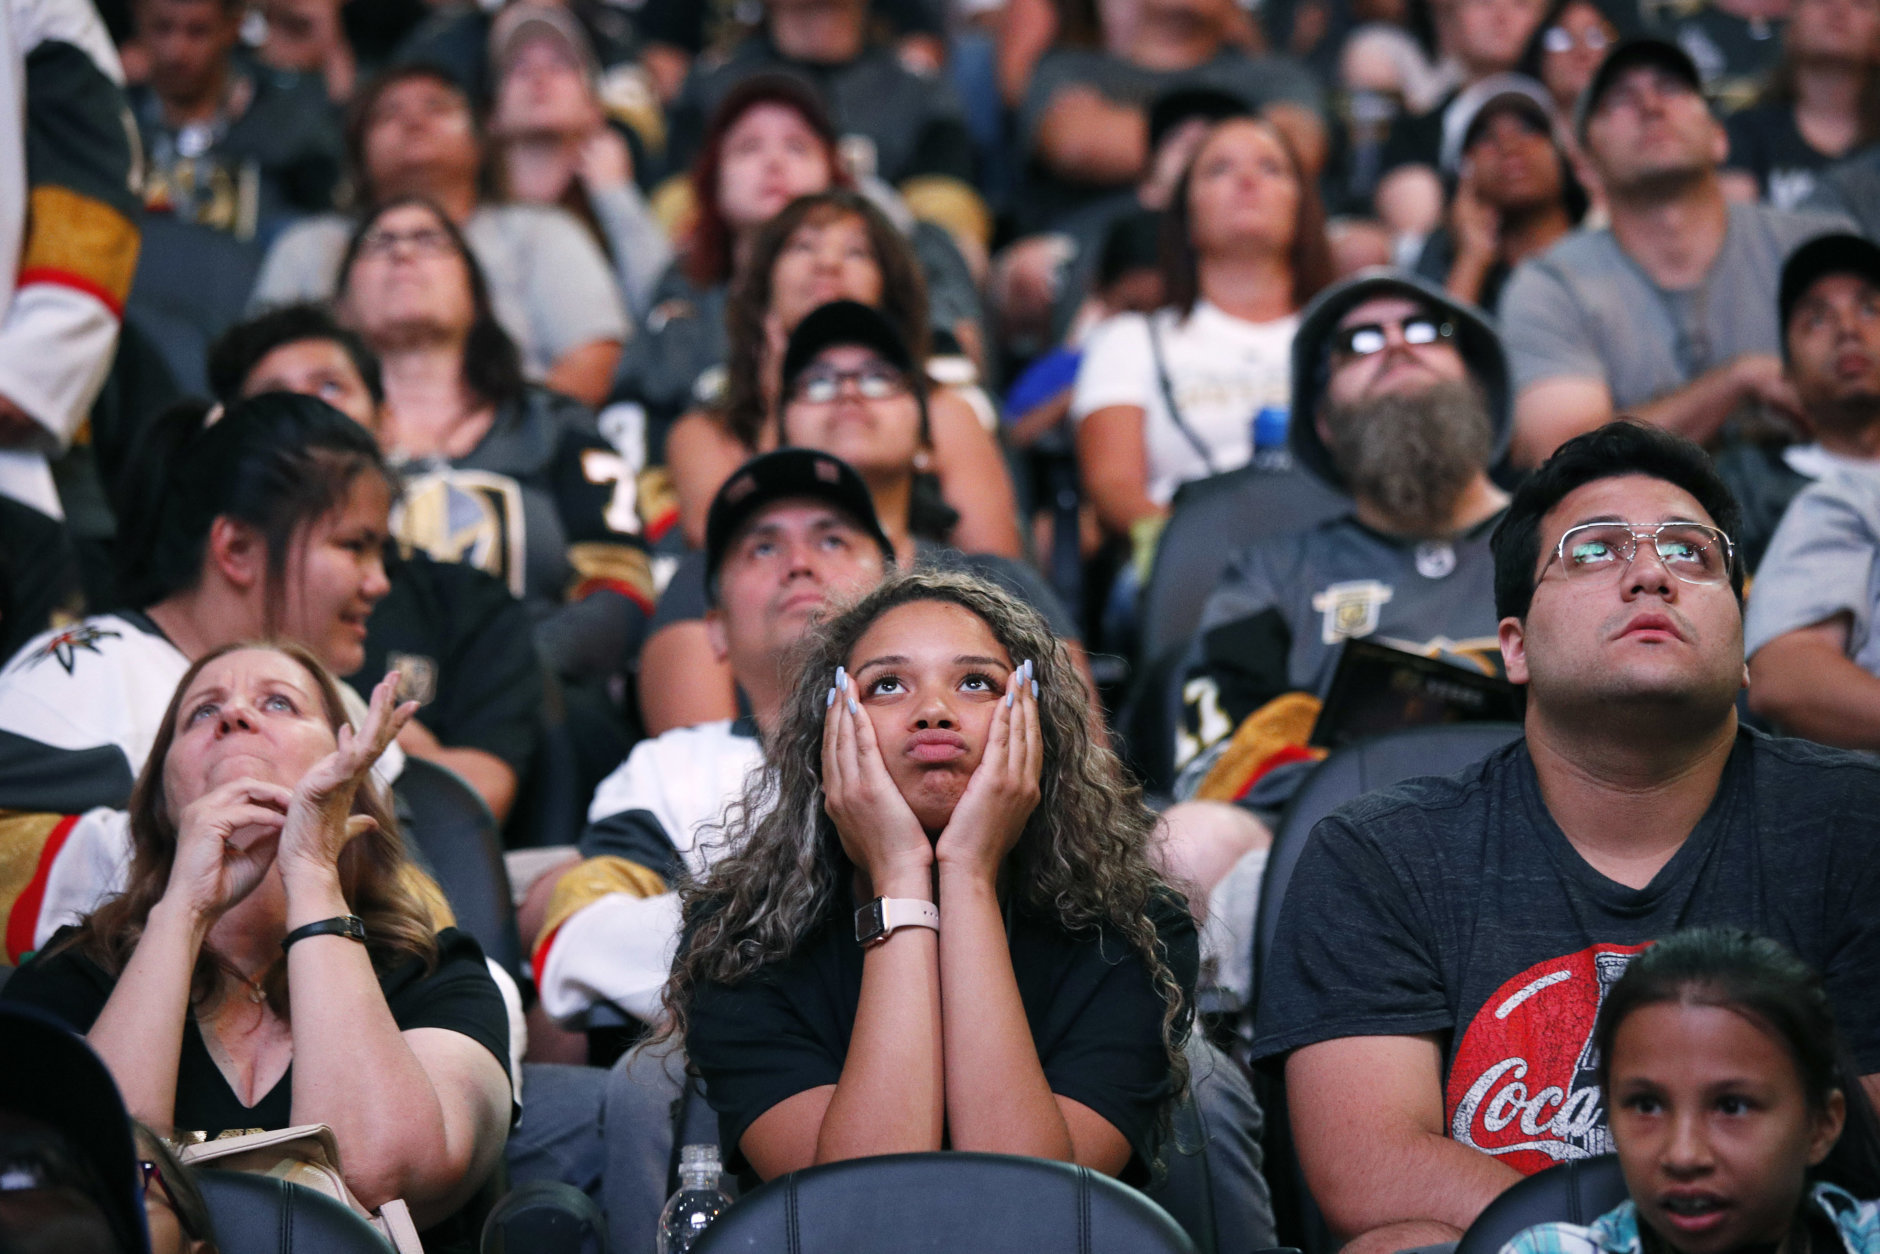 Kayla Tyus, center, reacts as the Vegas Golden Knights trail the Washington Capitals during a watch party for Game 4 of the NHL hockey Stanley Cup Final, Monday, June 4, 2018, in Las Vegas. (AP Photo/John Locher)